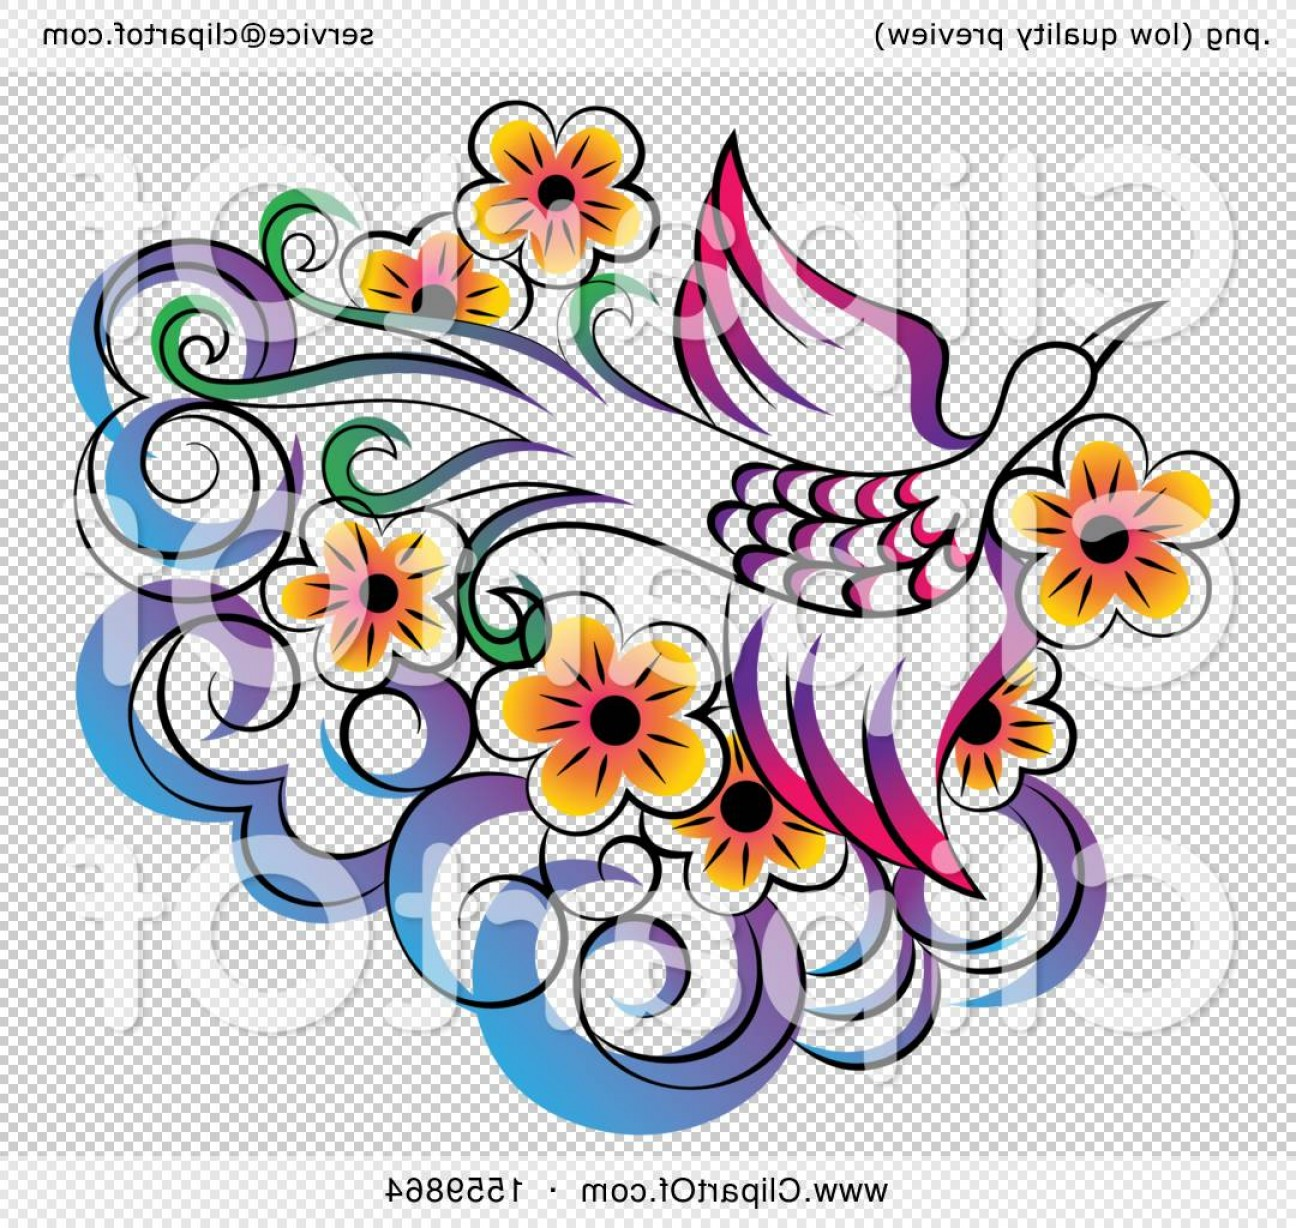 Firebird Vector Transparent Background: Stunning Phoenix Flying Over Flowers And A Cloud